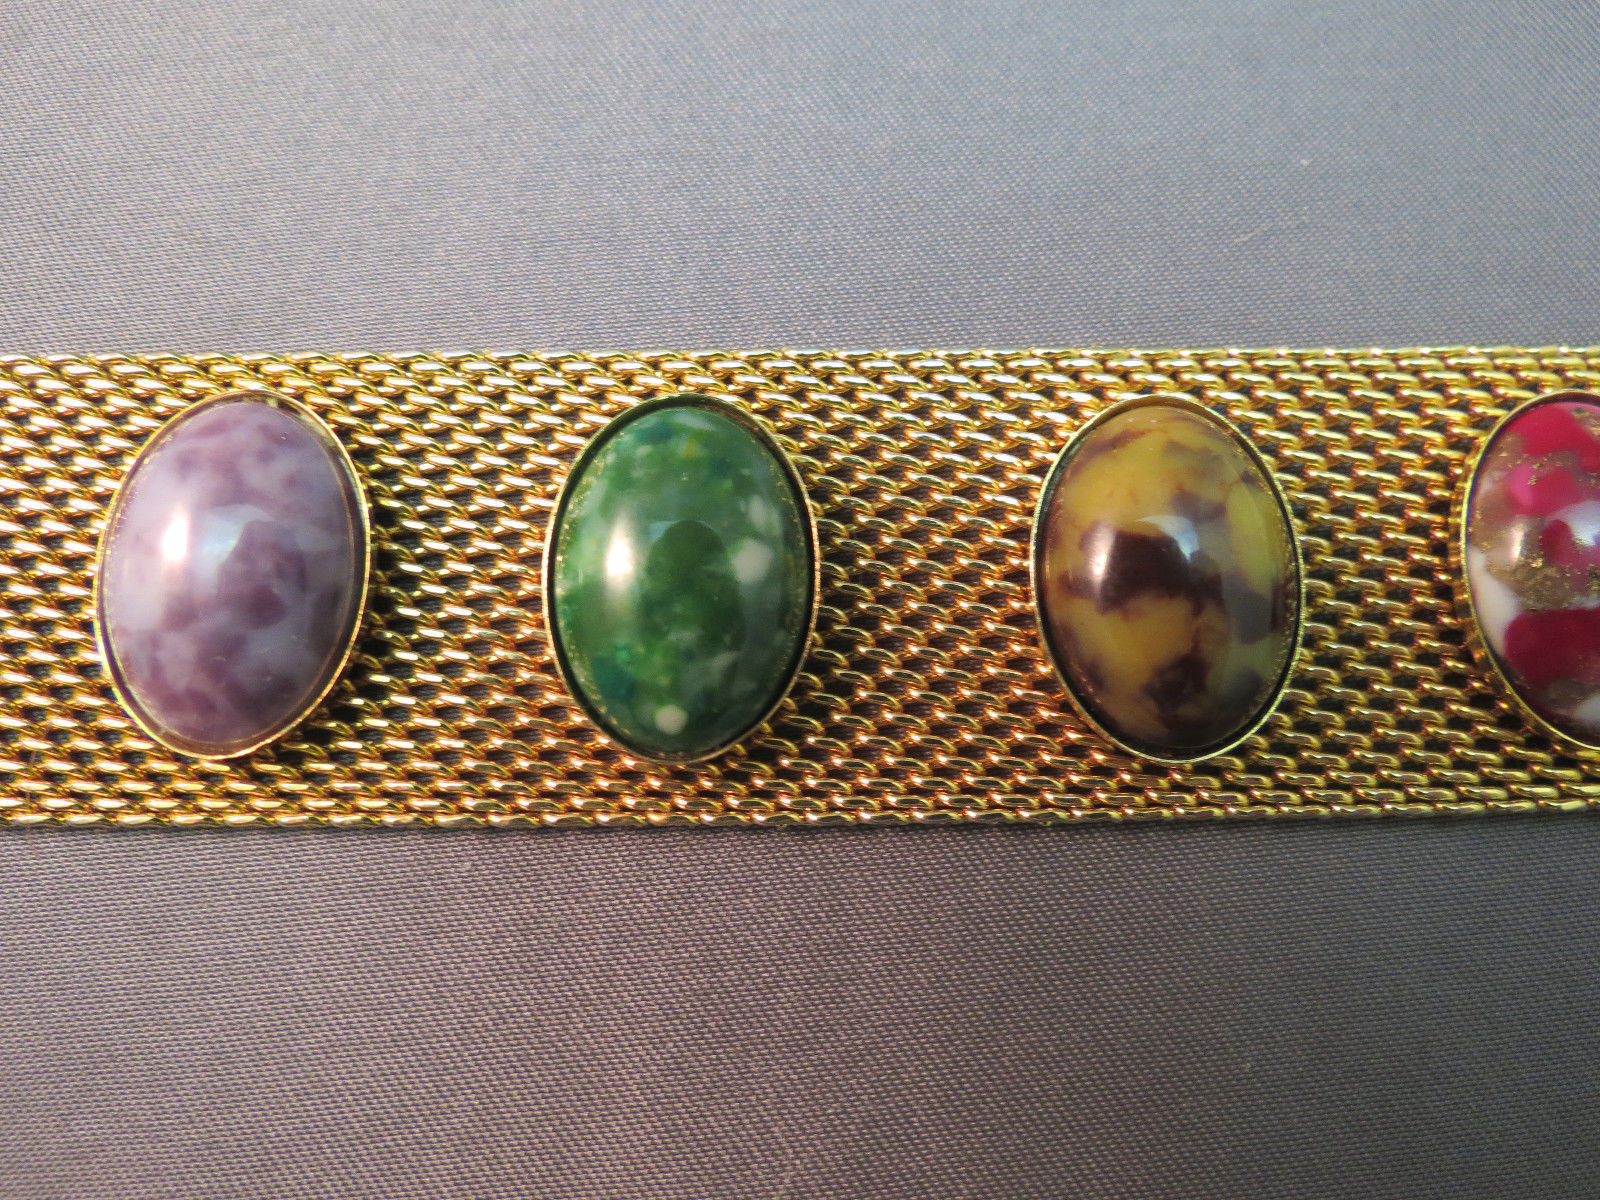 VTG Sarah Coventry Bracelet Wide Mesh Marbled Cabochon Stones Gold Plated 7.5""